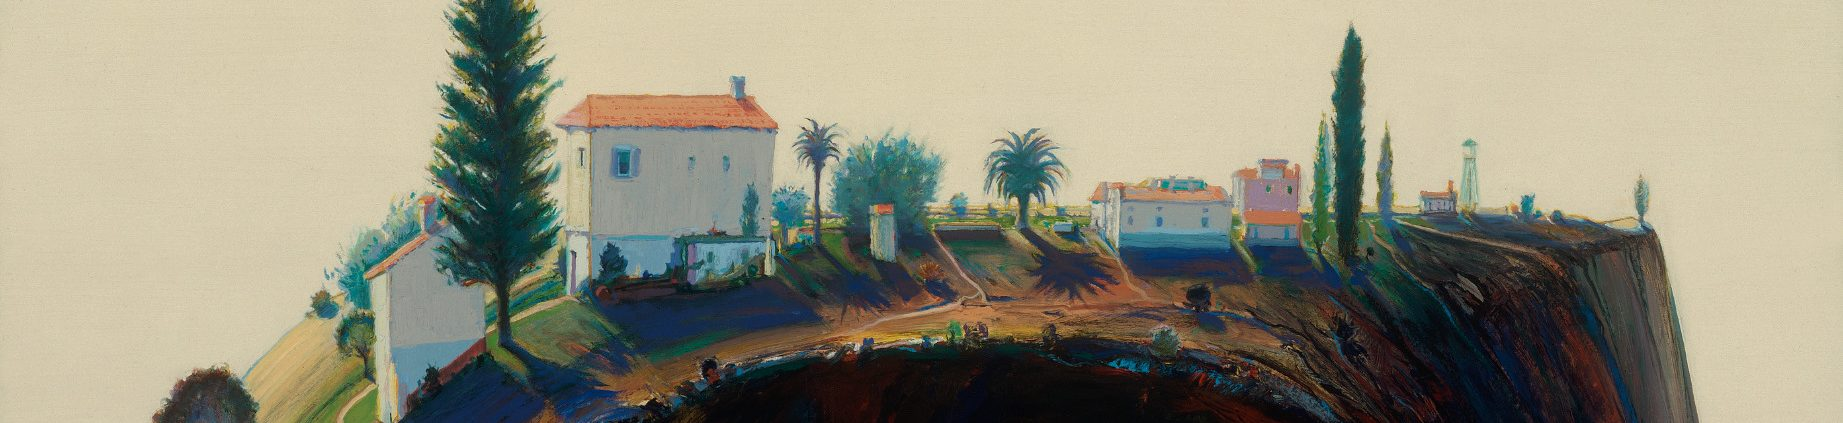 fabulous collection of pop art interior that will catch.htm city  river  mountain wayne thiebaud s california     panorama  city  river  mountain wayne thiebaud s